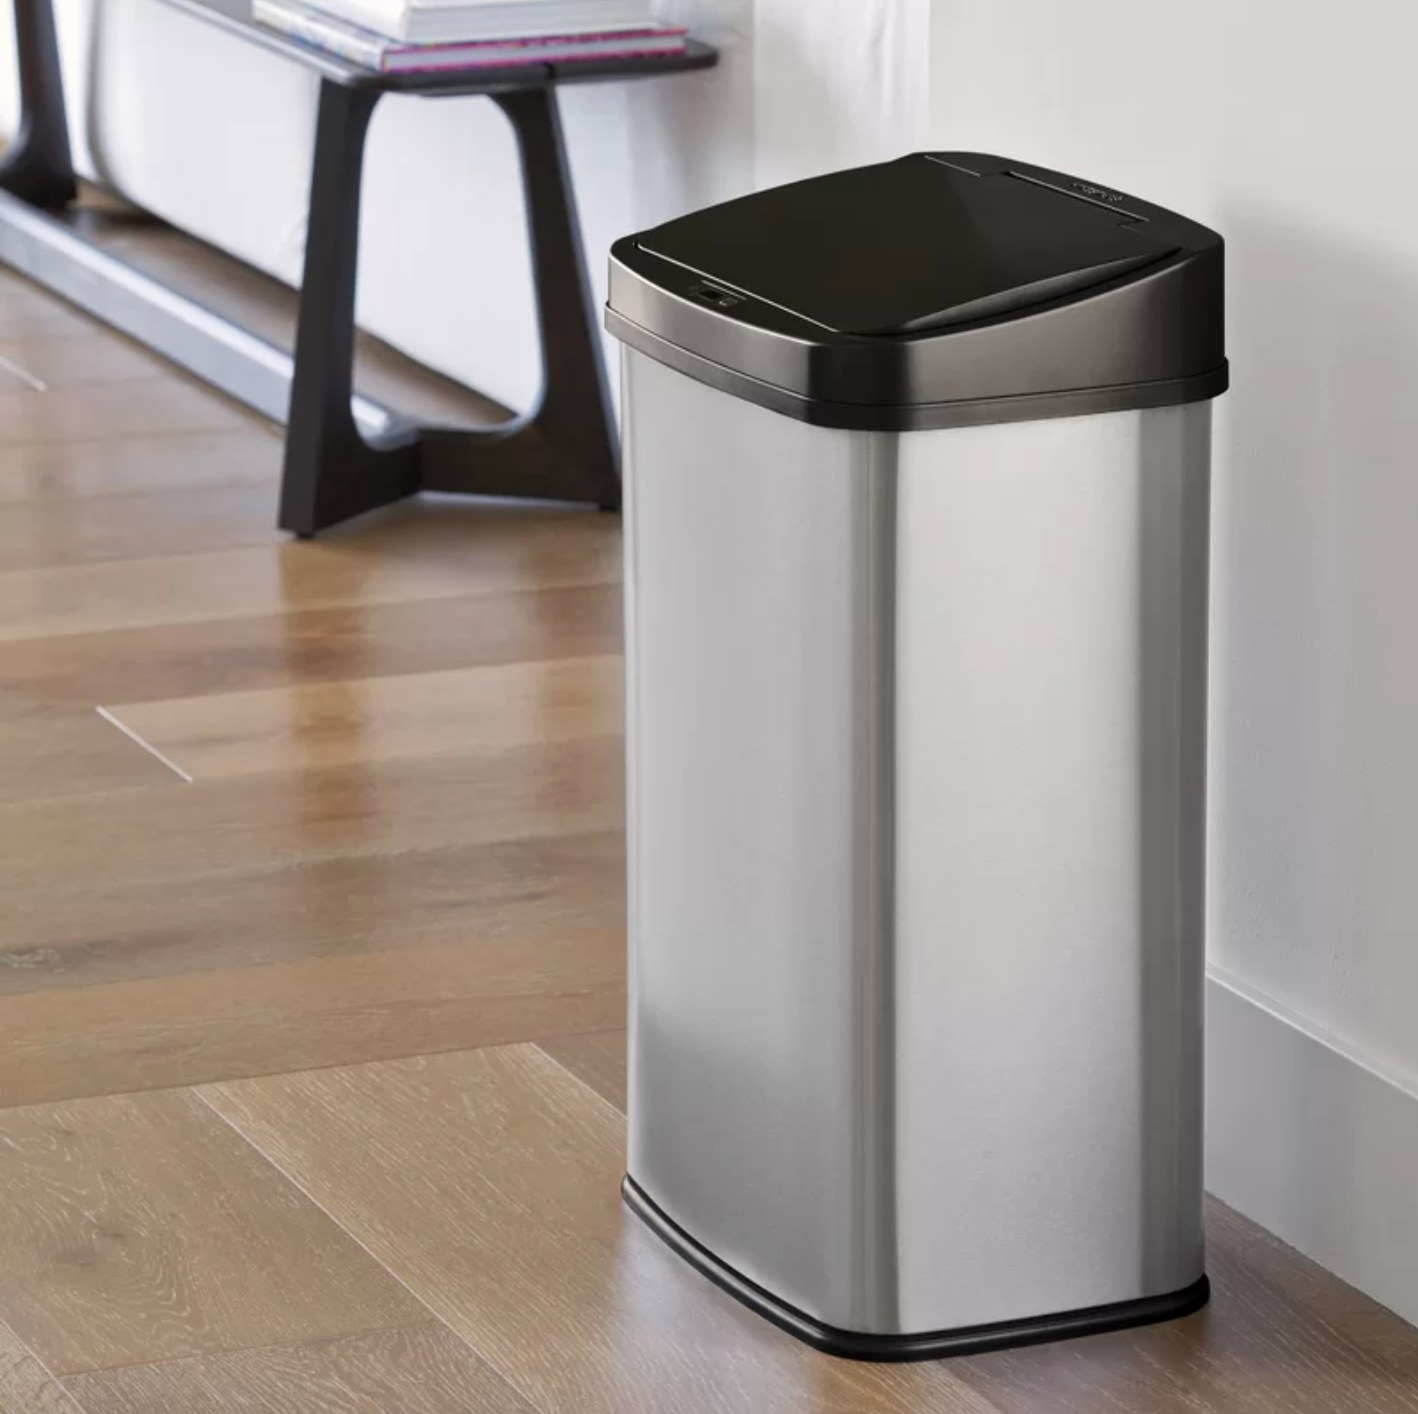 The stainless steel trash can with a black motion censor lid